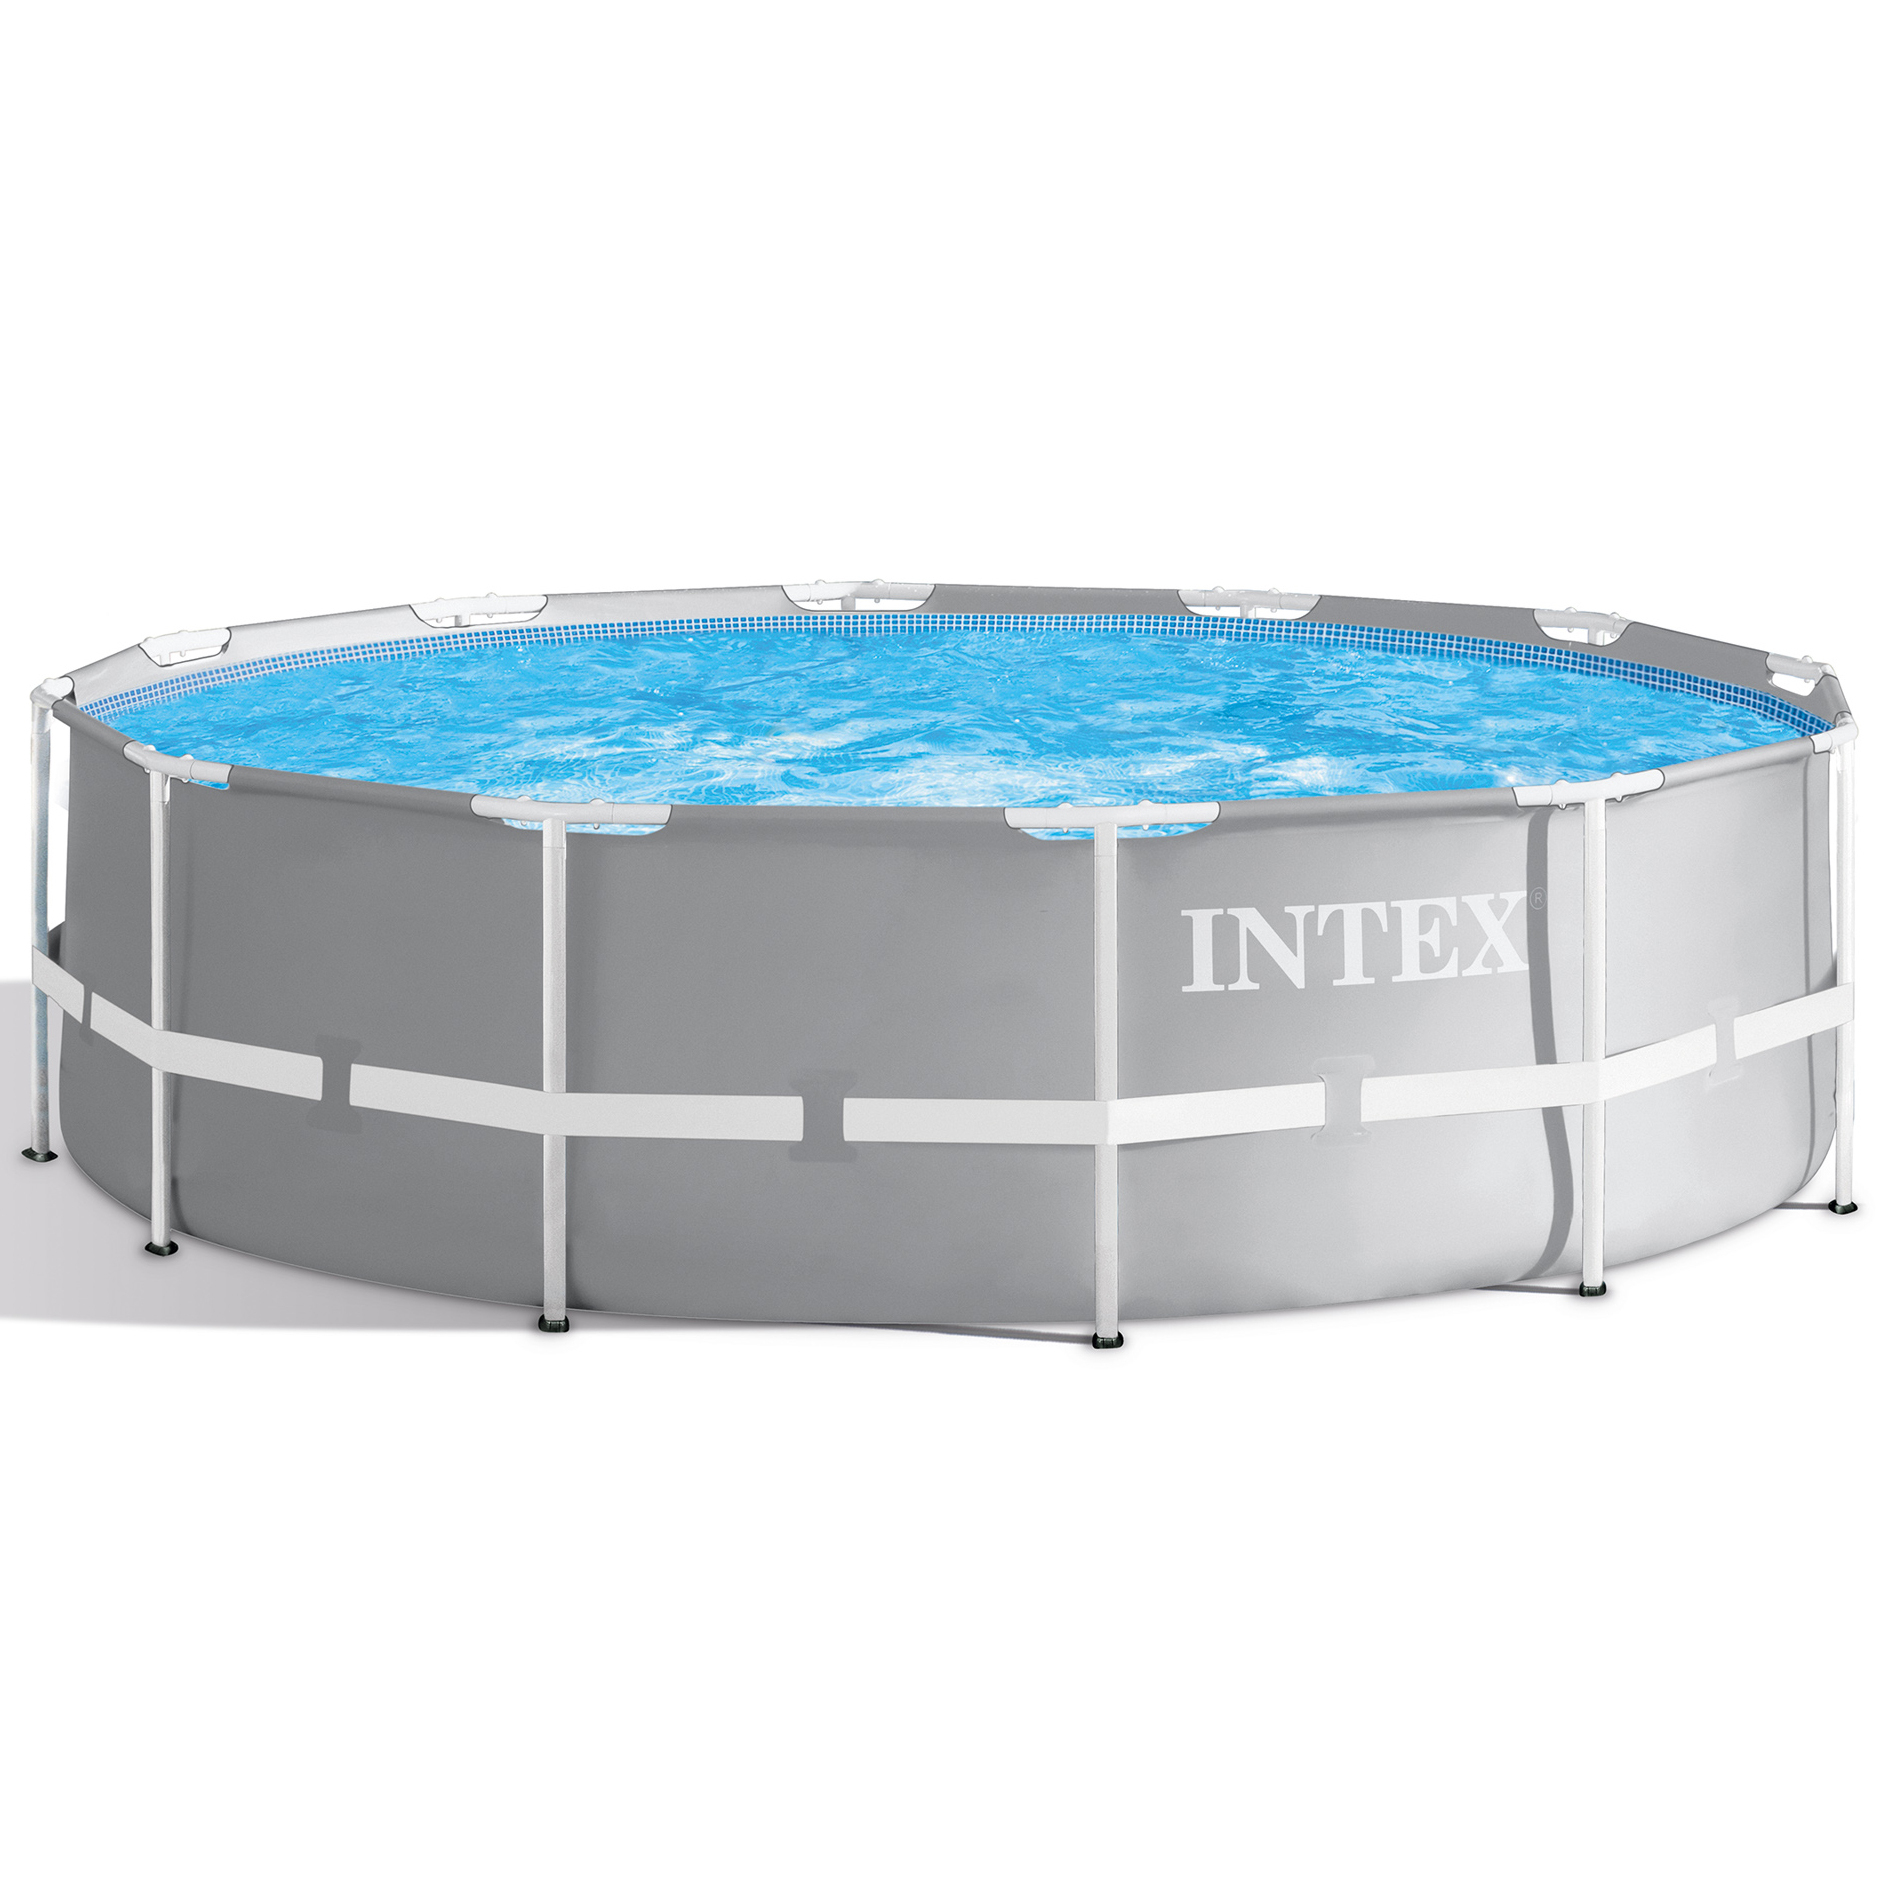 Piscine Tubulaire Ronde Intex (Ø3,66X1,22M) dedans Bache Piscine Intex 3.66